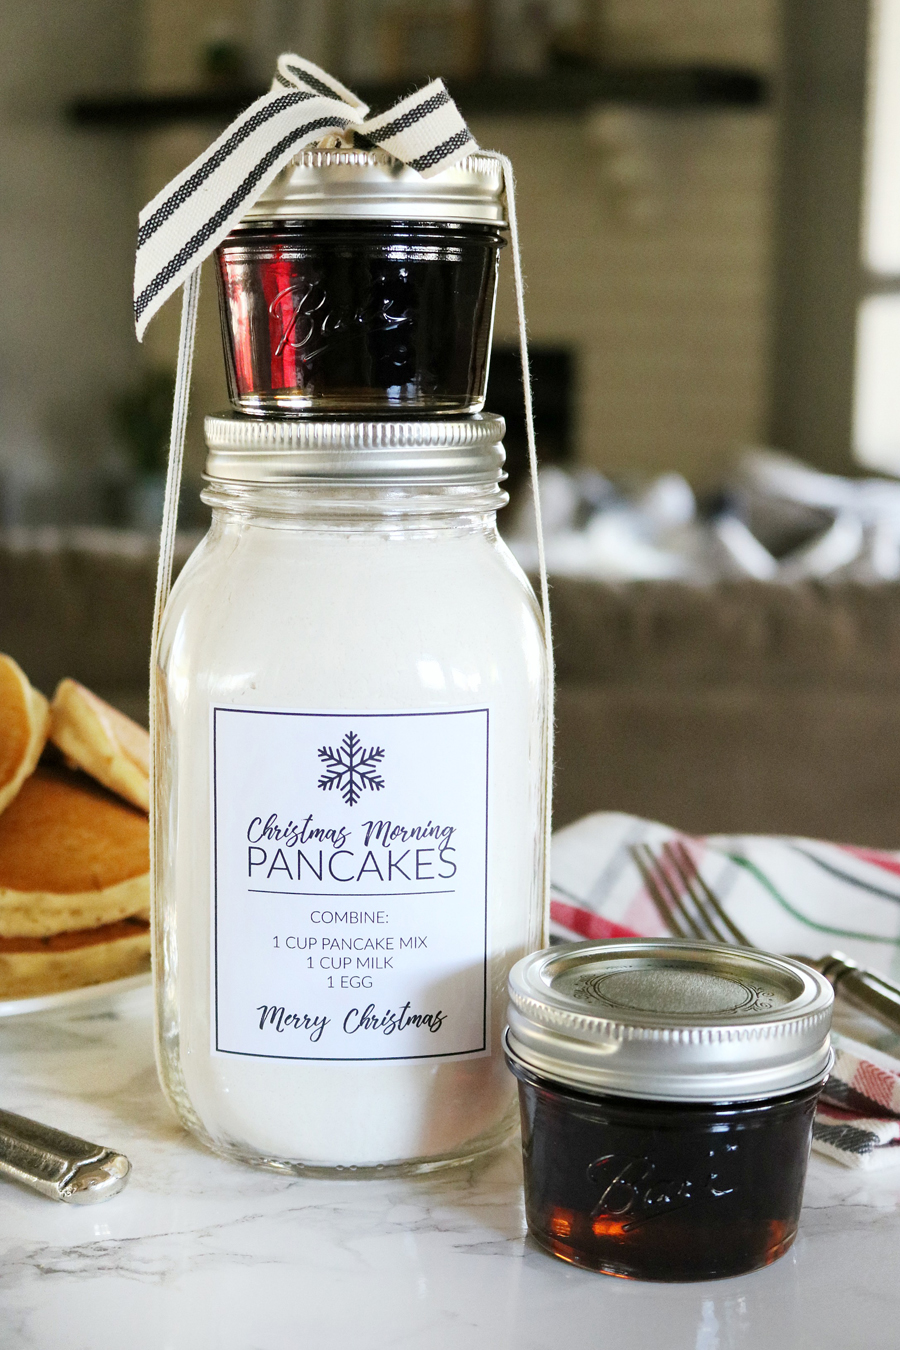 Christmas Morning Pancakes in a Jar Gift Idea with Printables